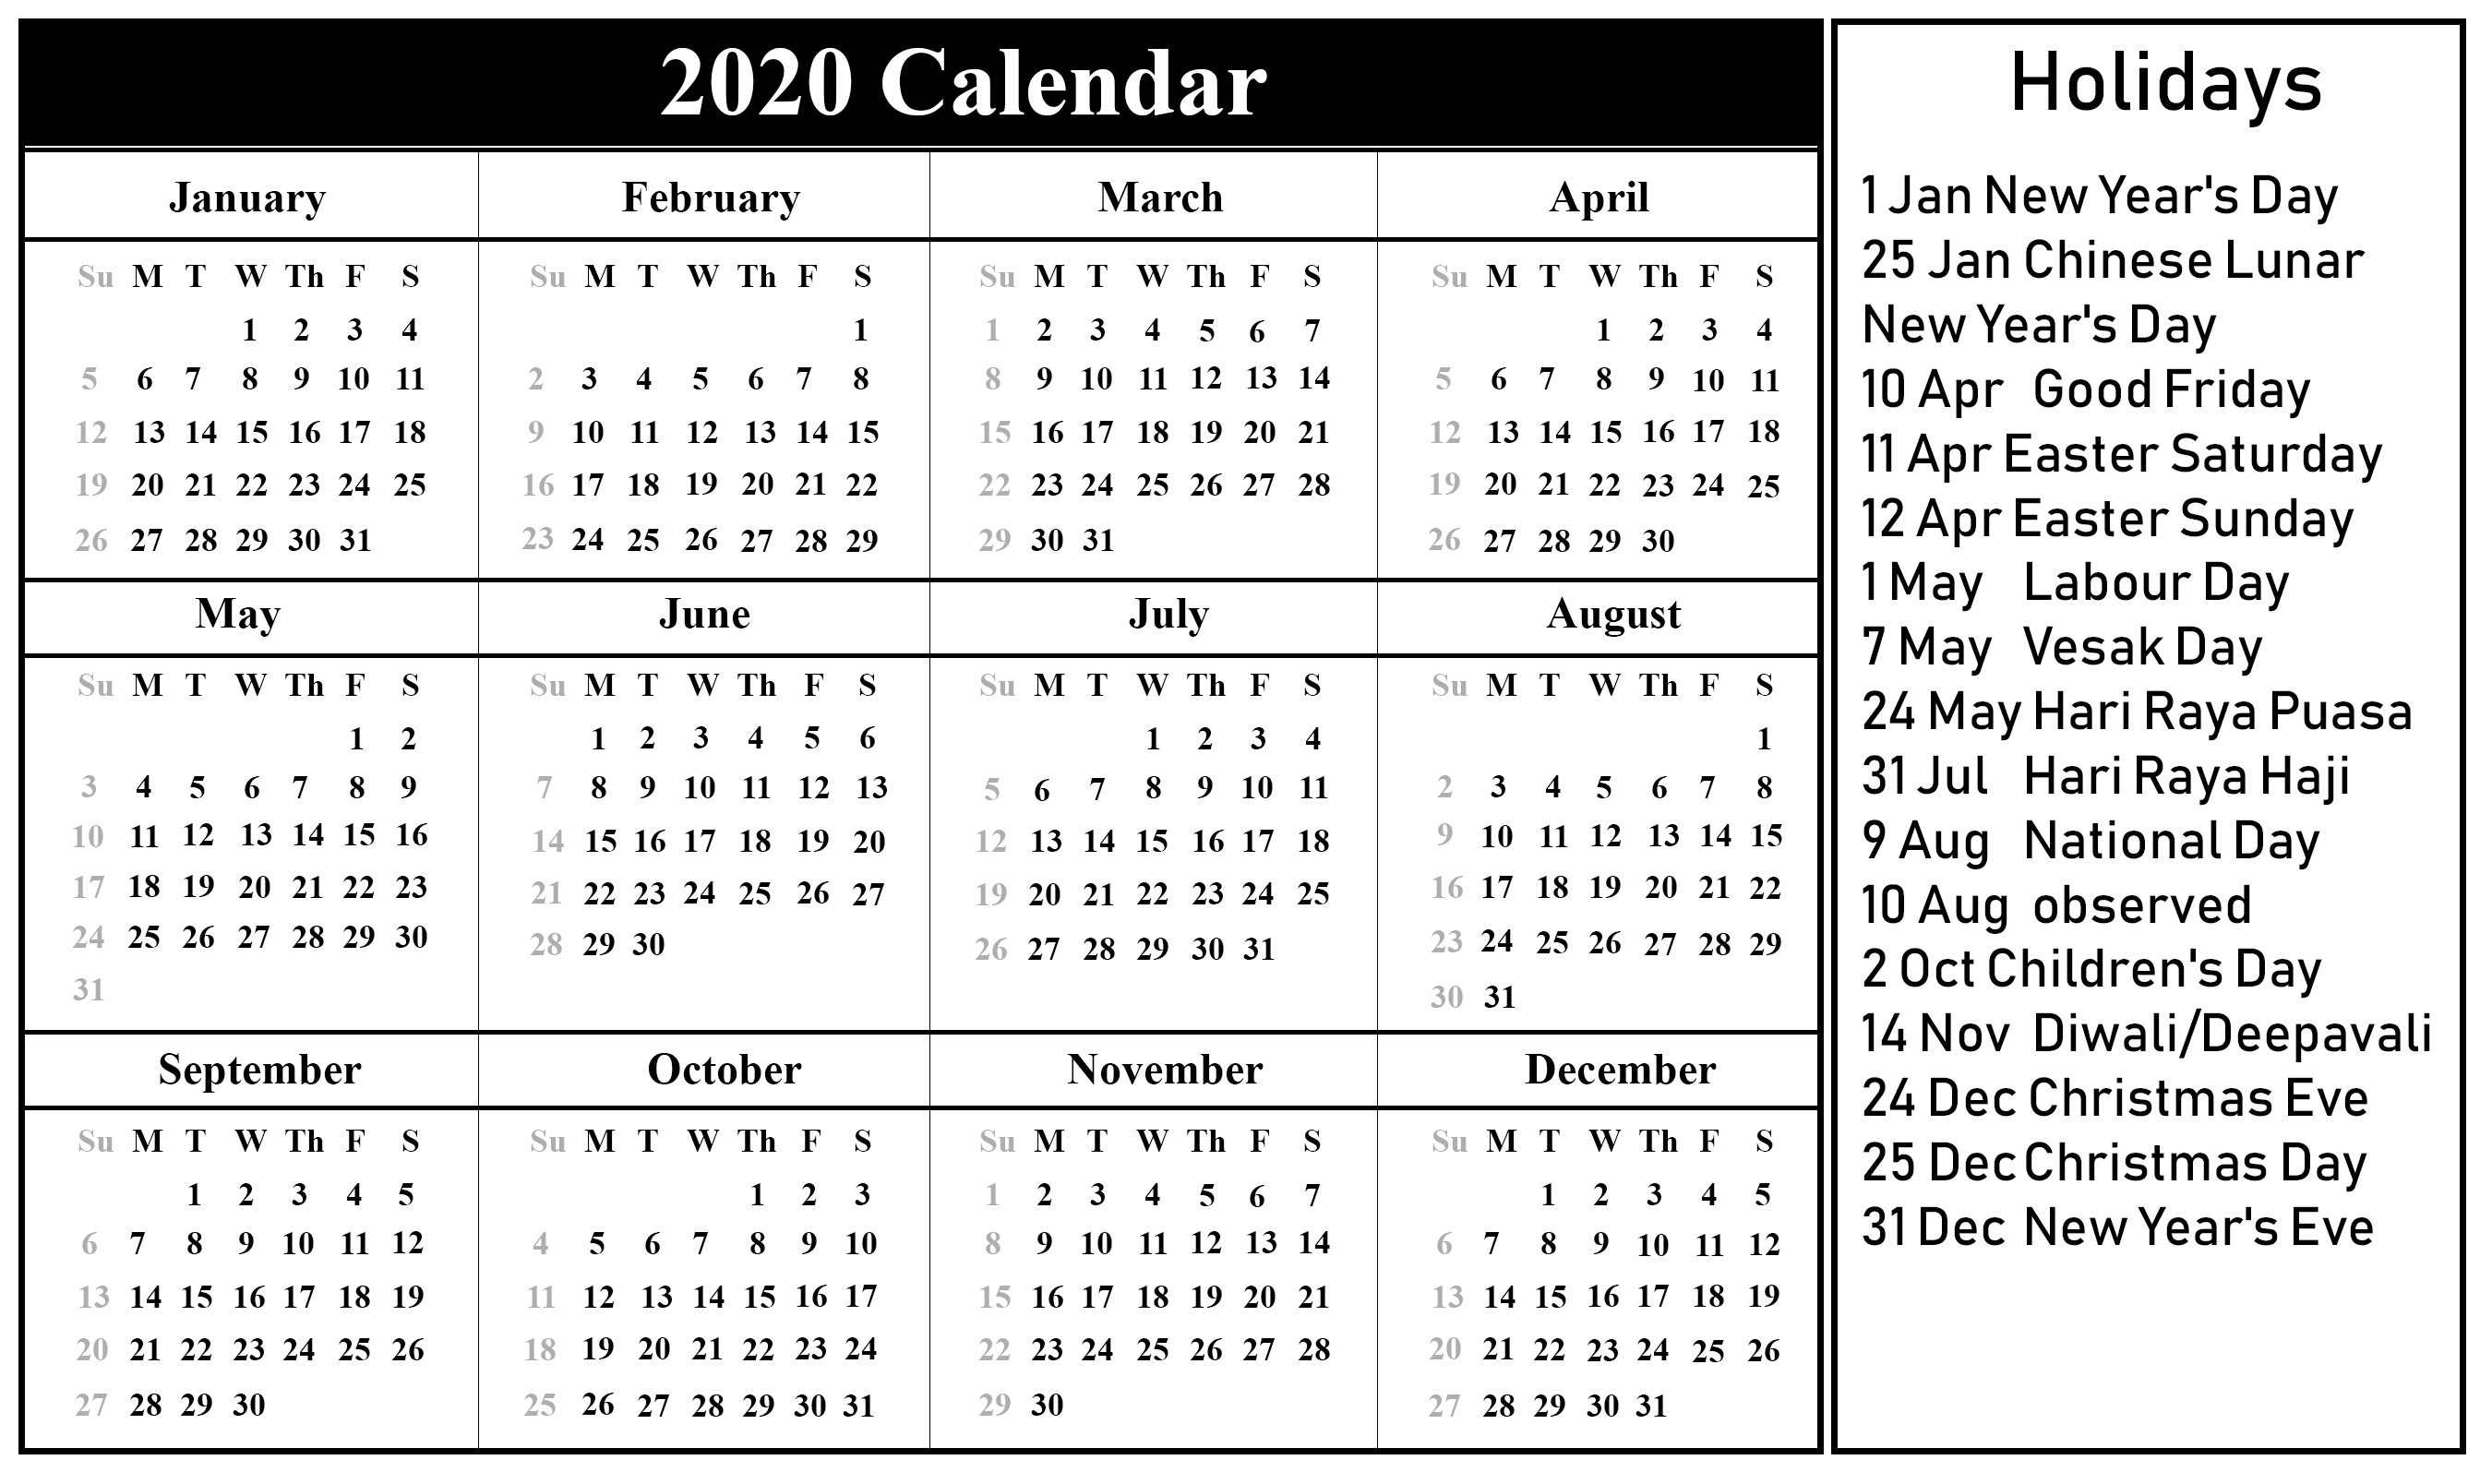 Printable 2020 Calendar With Holidays | Monthly Calendar-Printable Calendar 2020 Including Bank Holidays